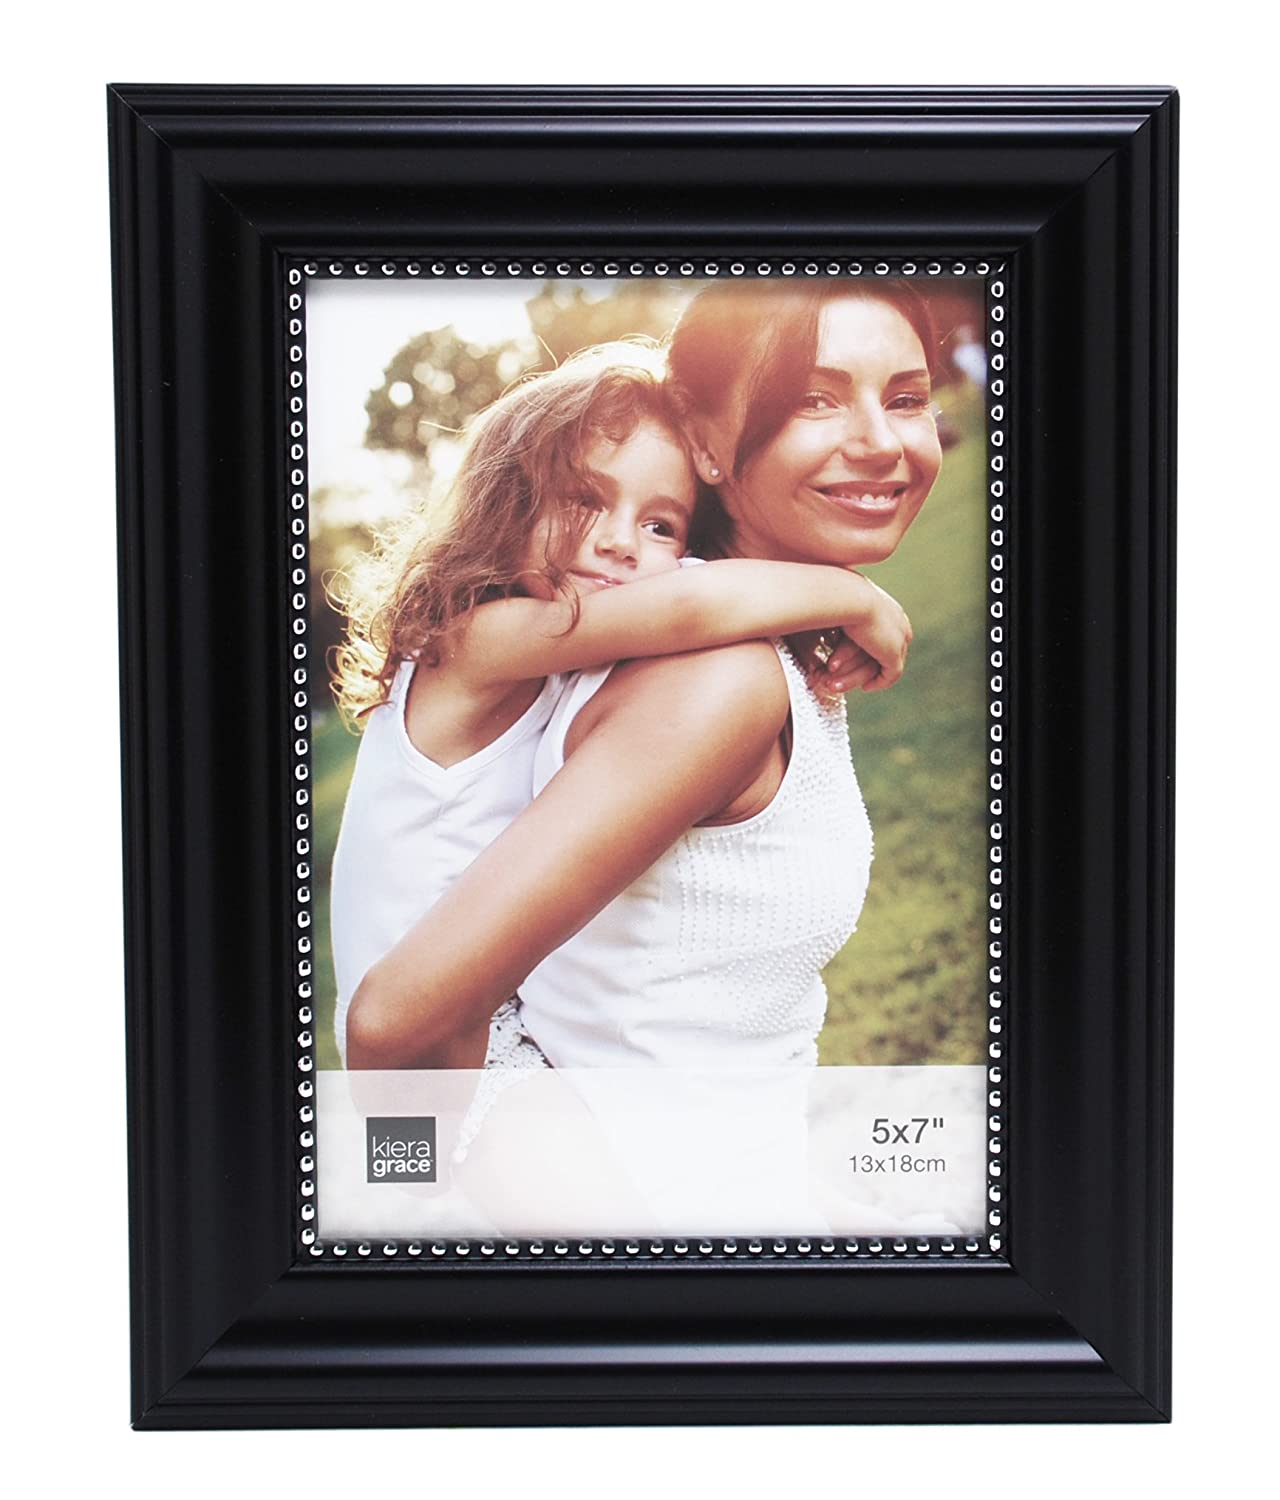 Kiera Grace Lucy Picture Frame, 4 by 6-Inch, Black with Silver Beading AZ Home & Gifts PH43893-5